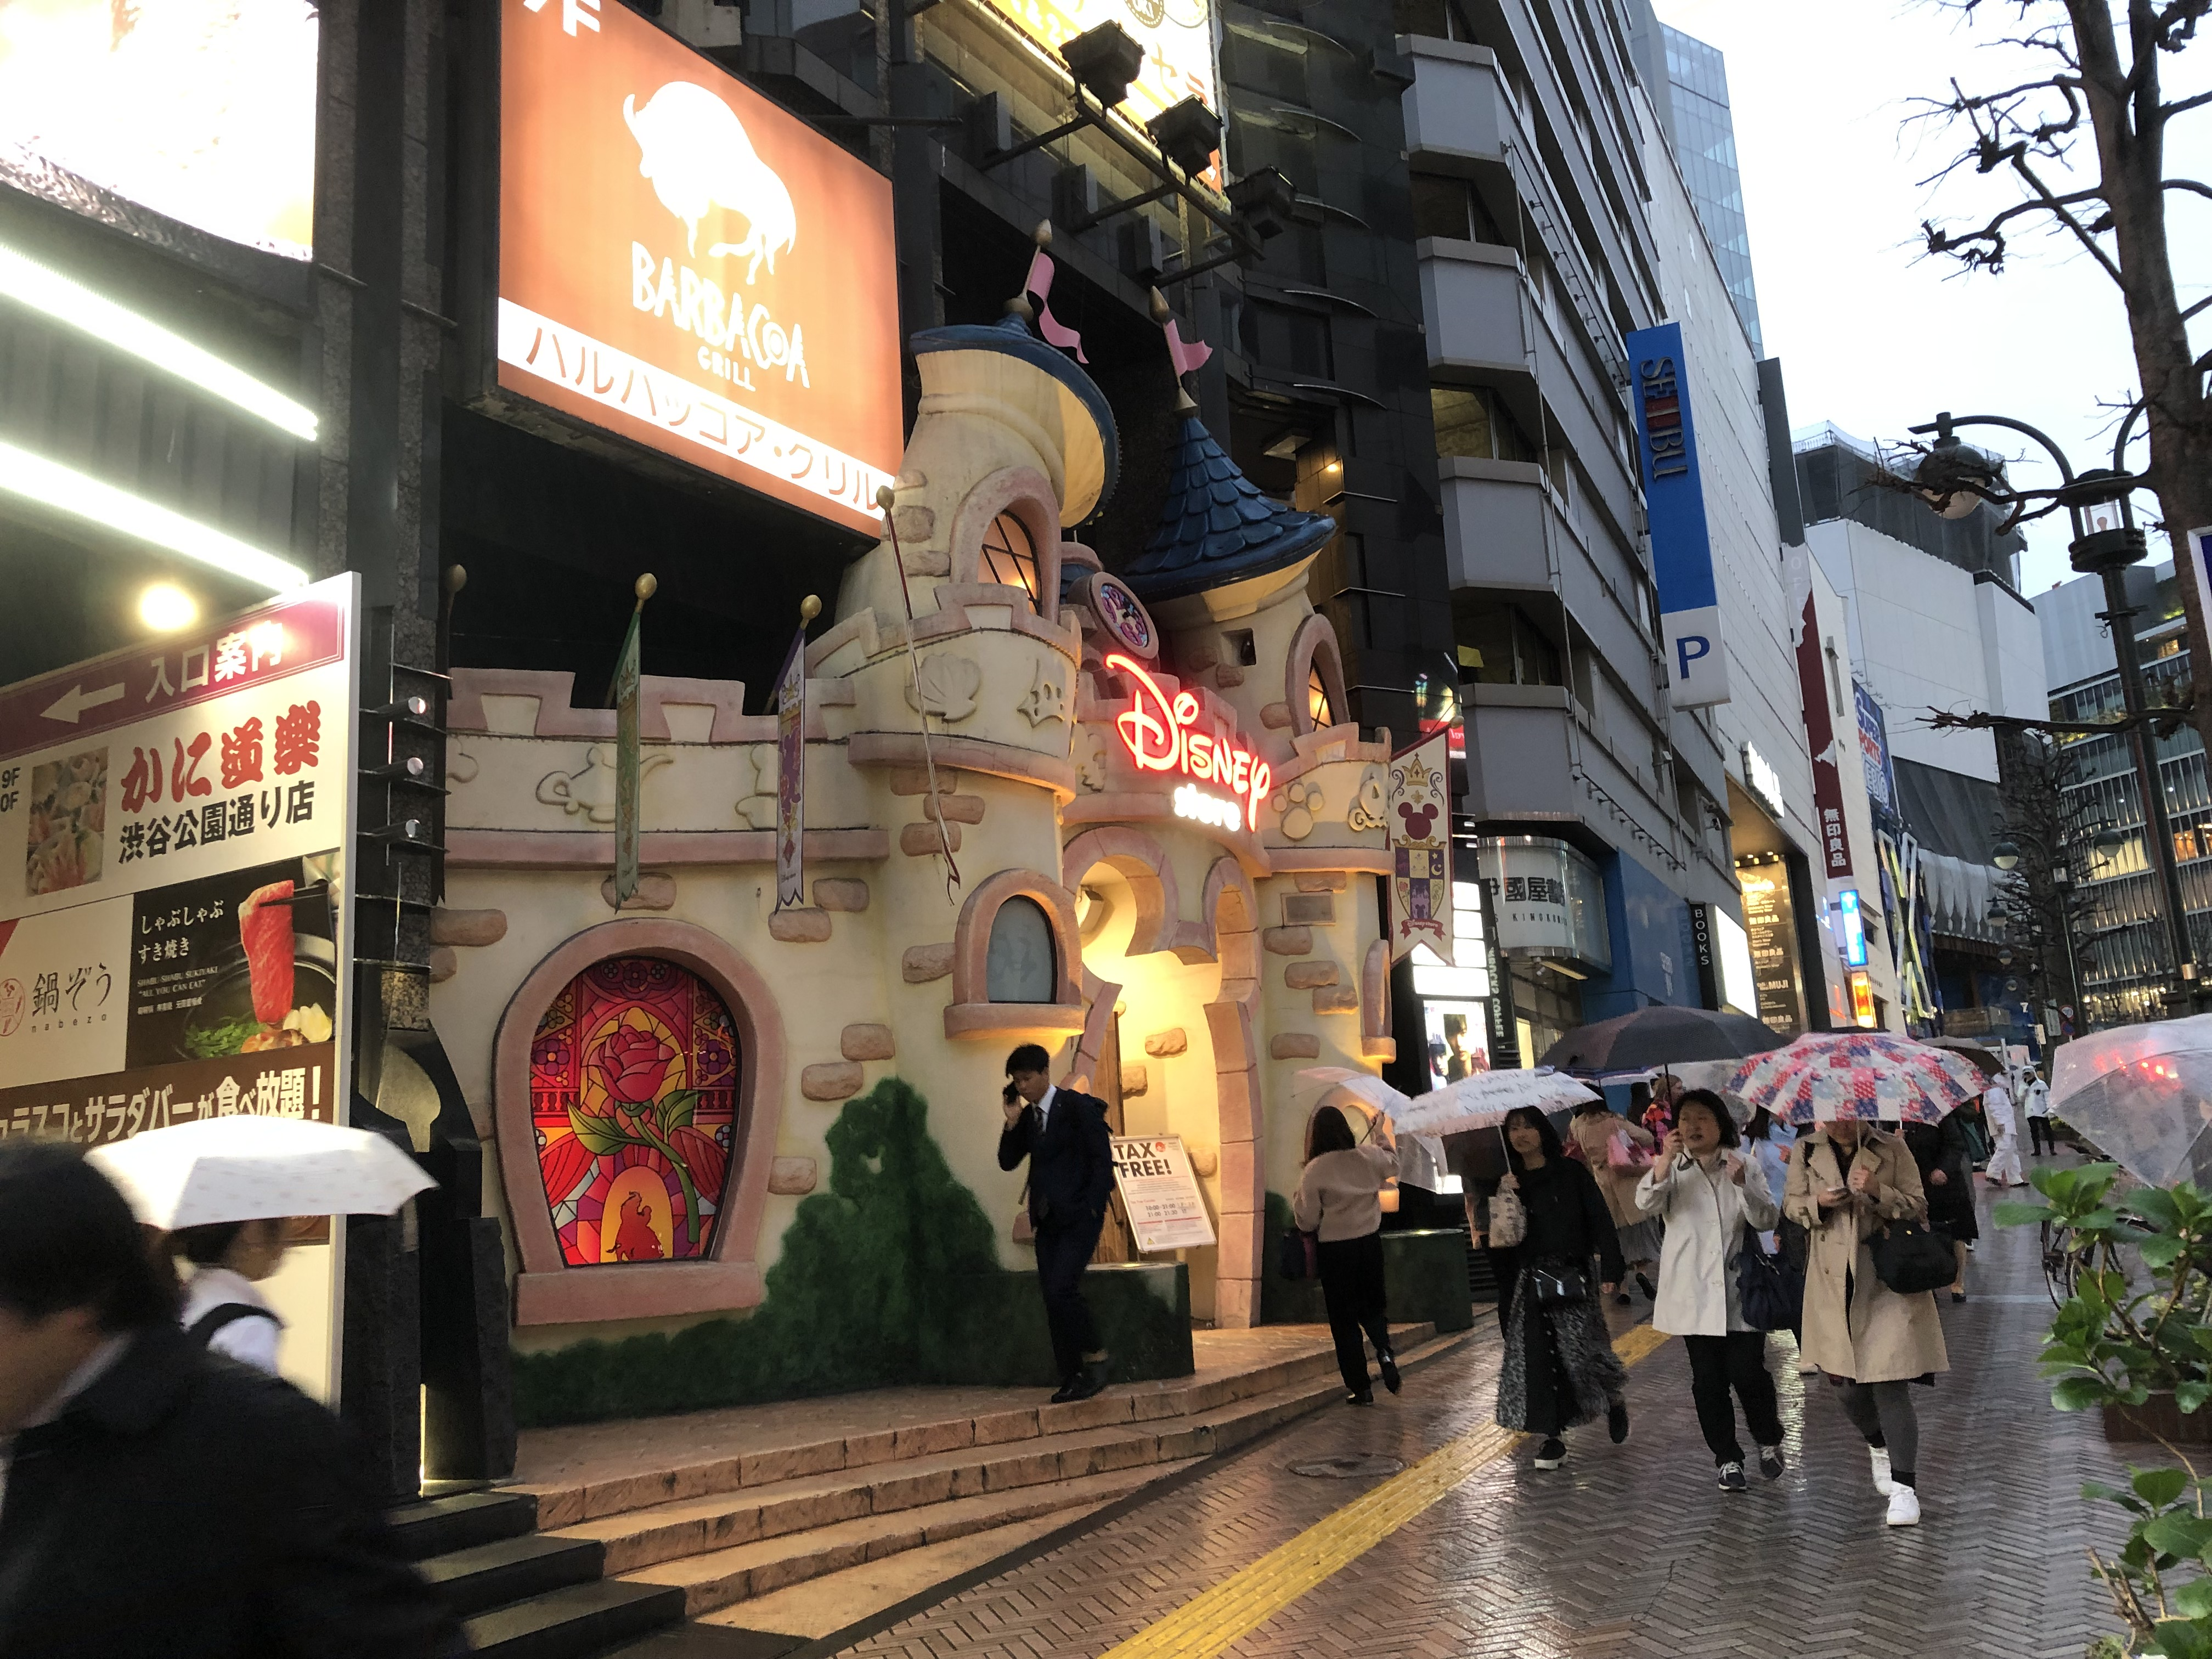 Tokyo: Our Japan Travel Diary - Nomad Seeks Home